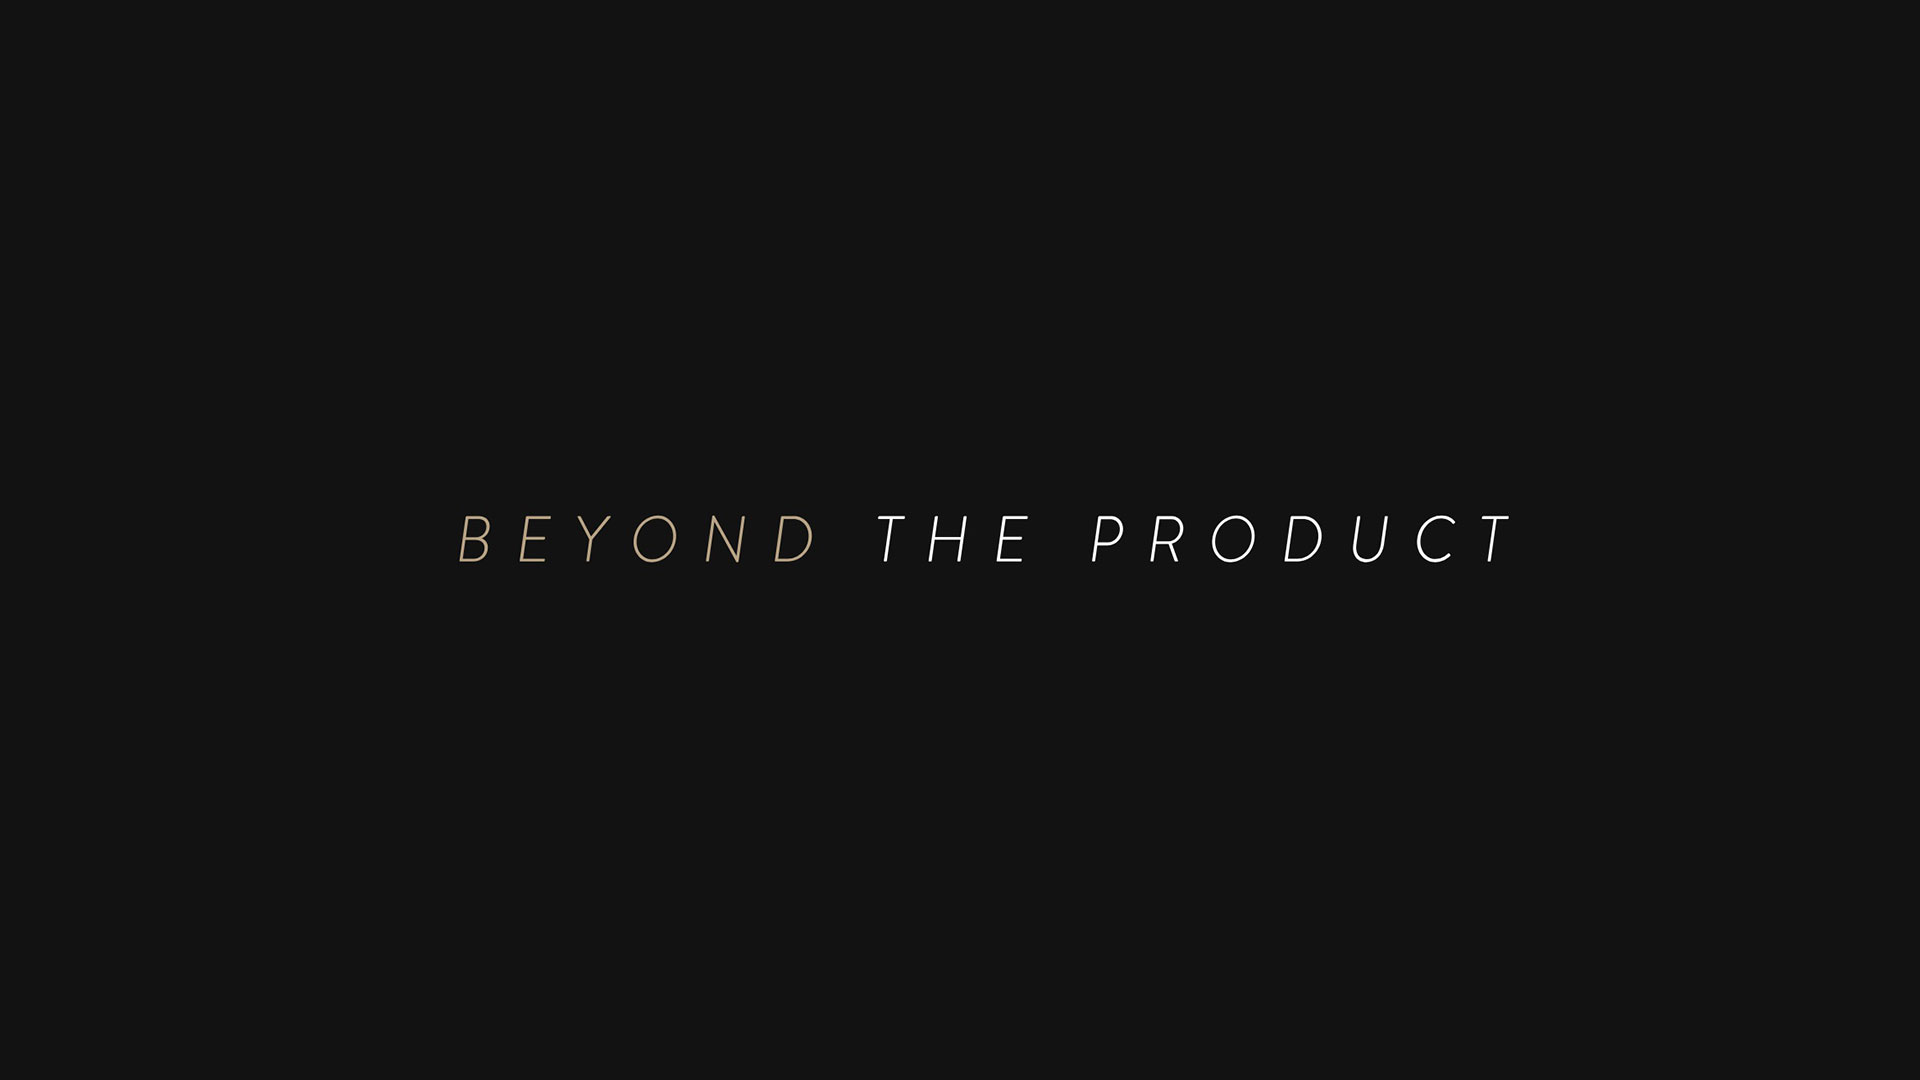 Beyond The Product